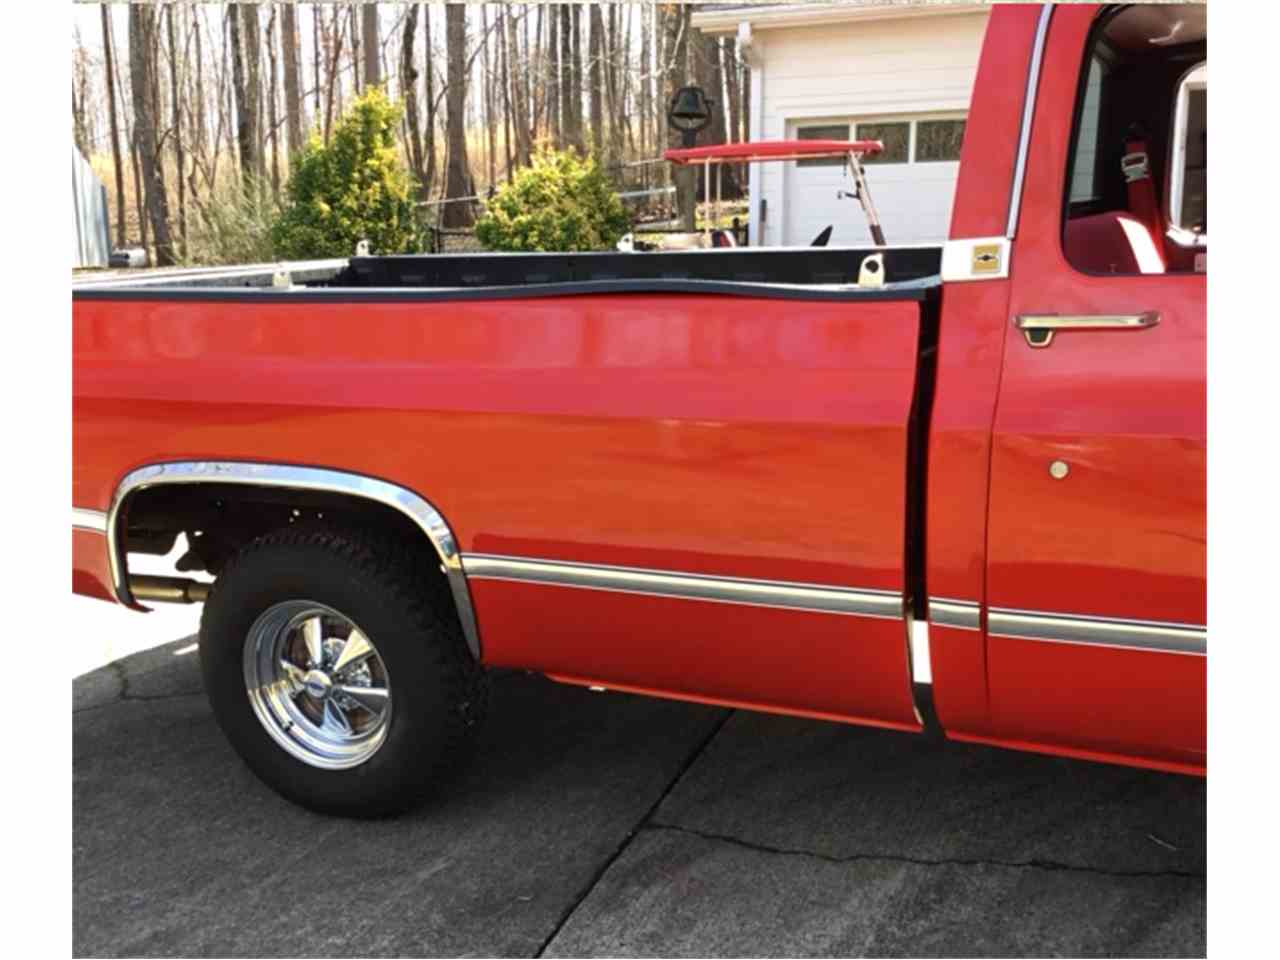 Large Picture of '85 Silverado located in HILLSBOROUGH  North Carolina Offered by a Private Seller - L1W3